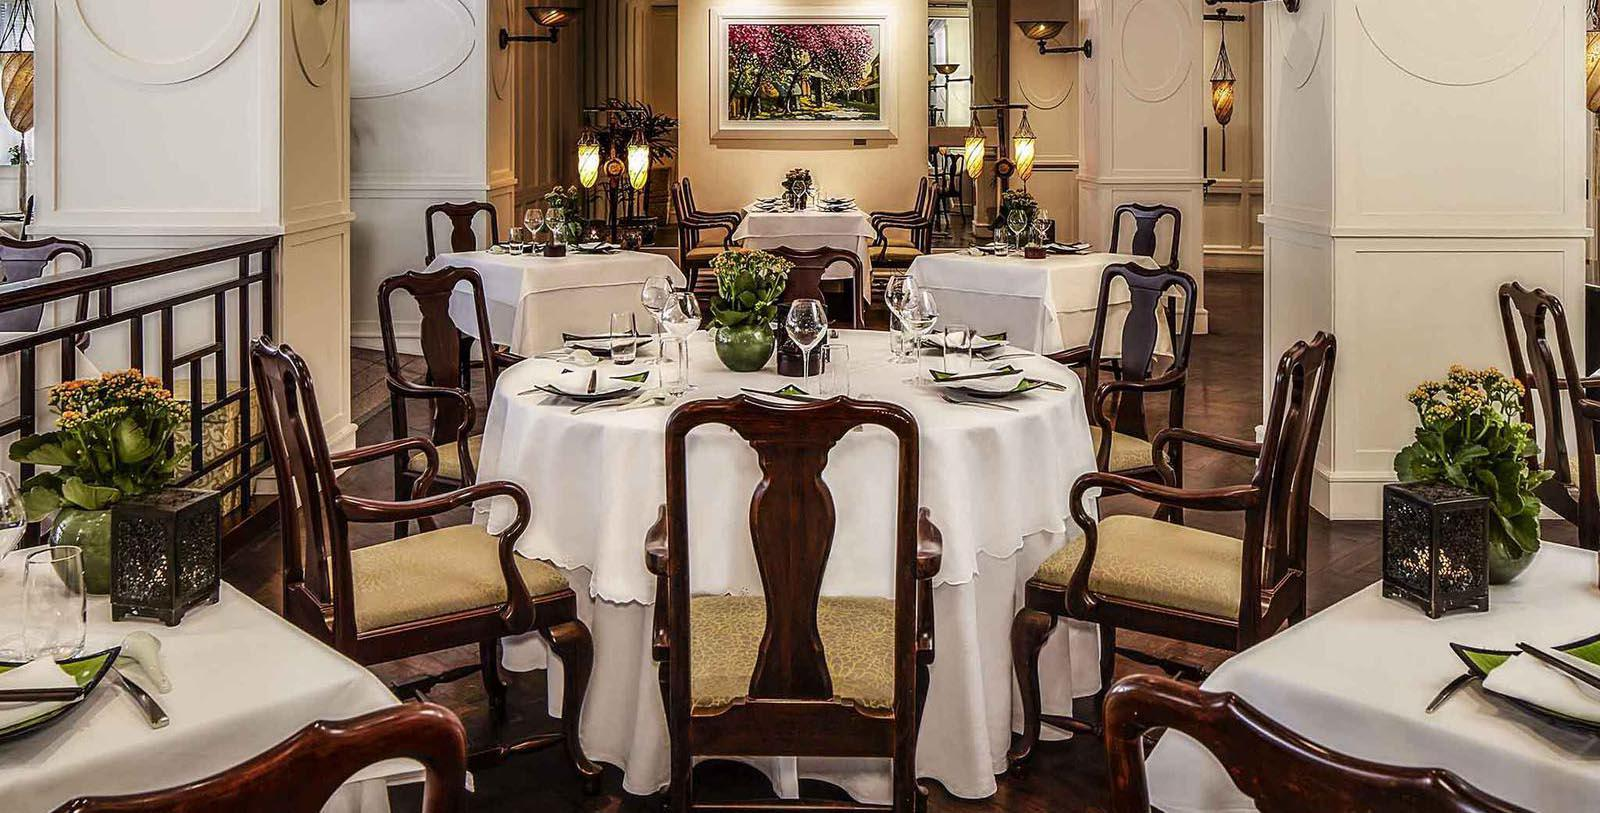 Image of Dining Room at Spices Garden Restaurant at Sofitel Legend Metropole Hanoi, 1901, Member of Historic Hotels Worldwide, in Hanoi, Vietnam, Taste